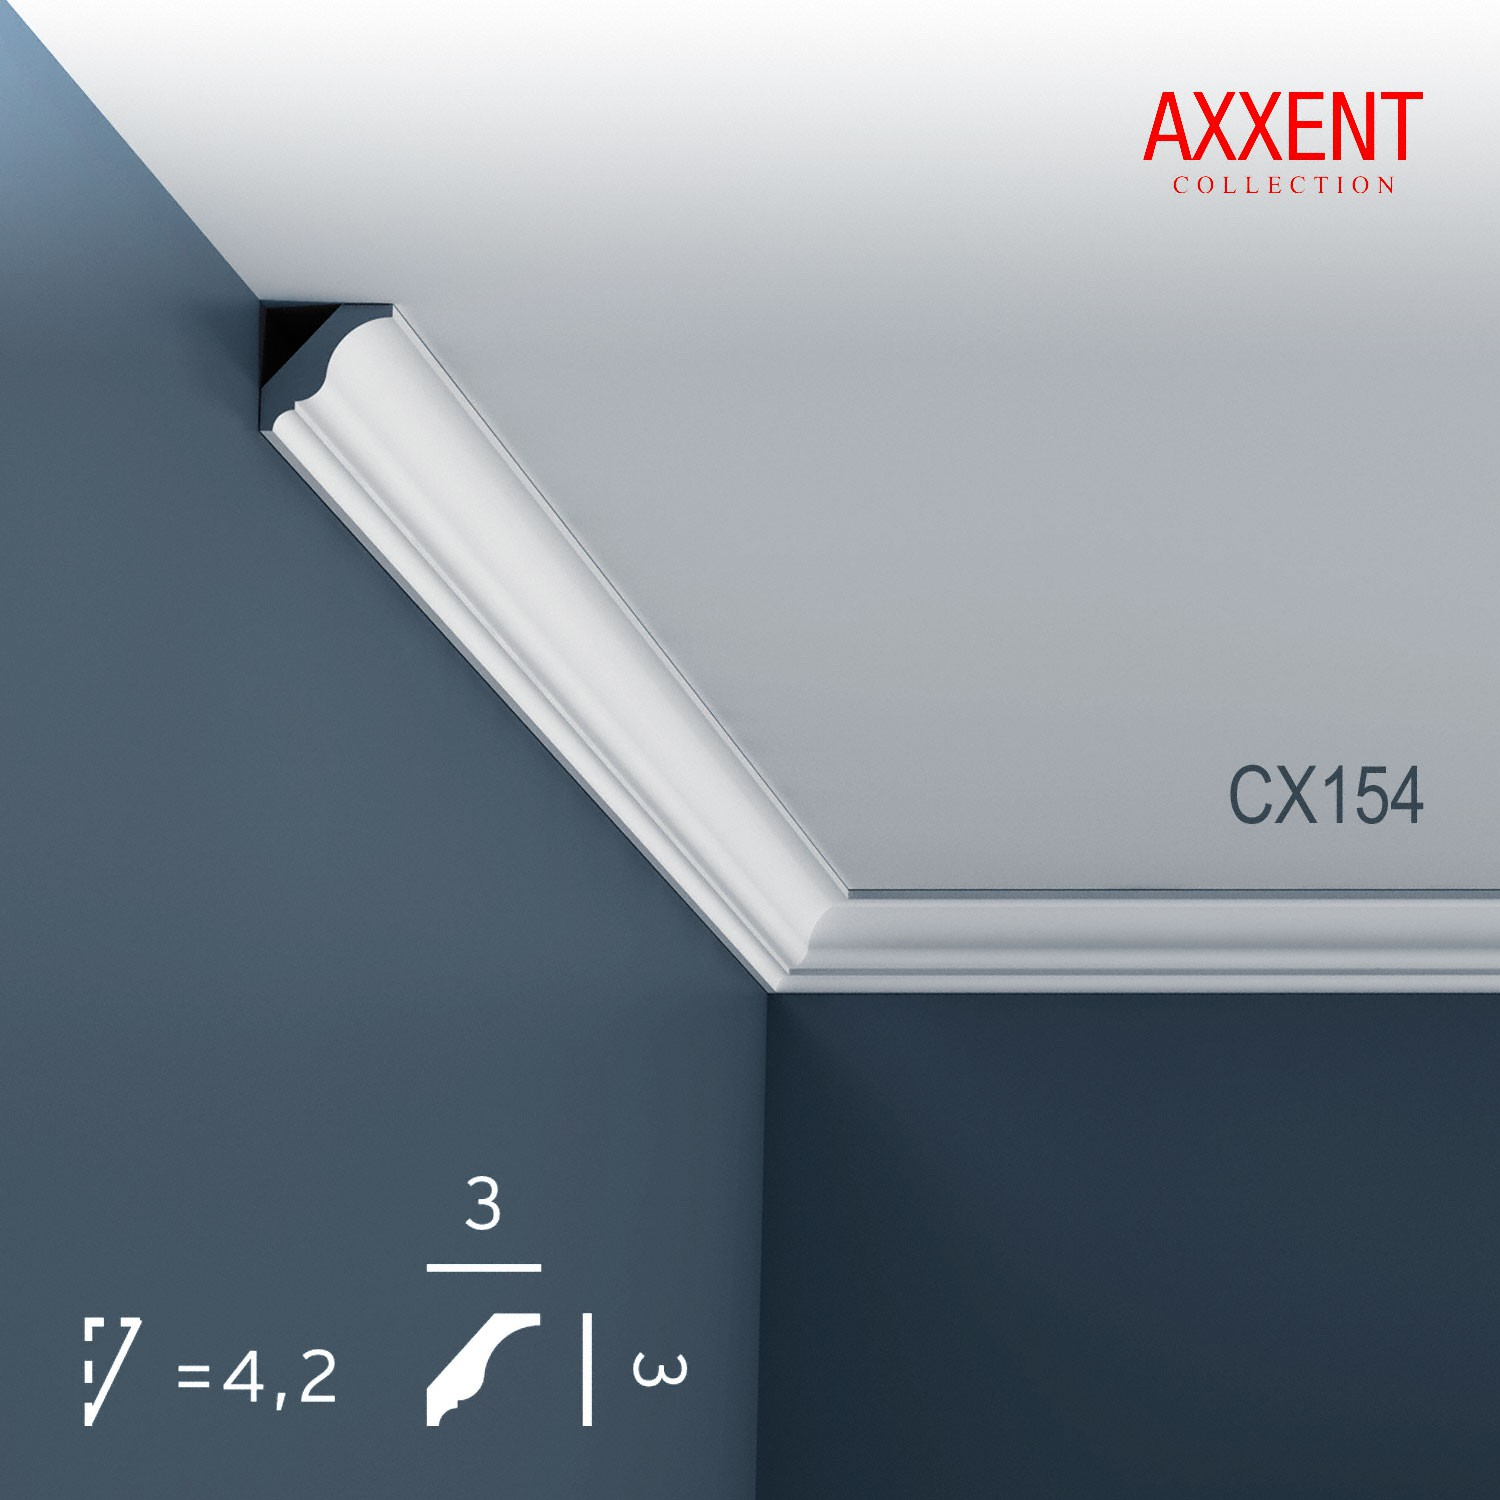 Element Decorativ Axxent Cx 154 2m Orac Decor